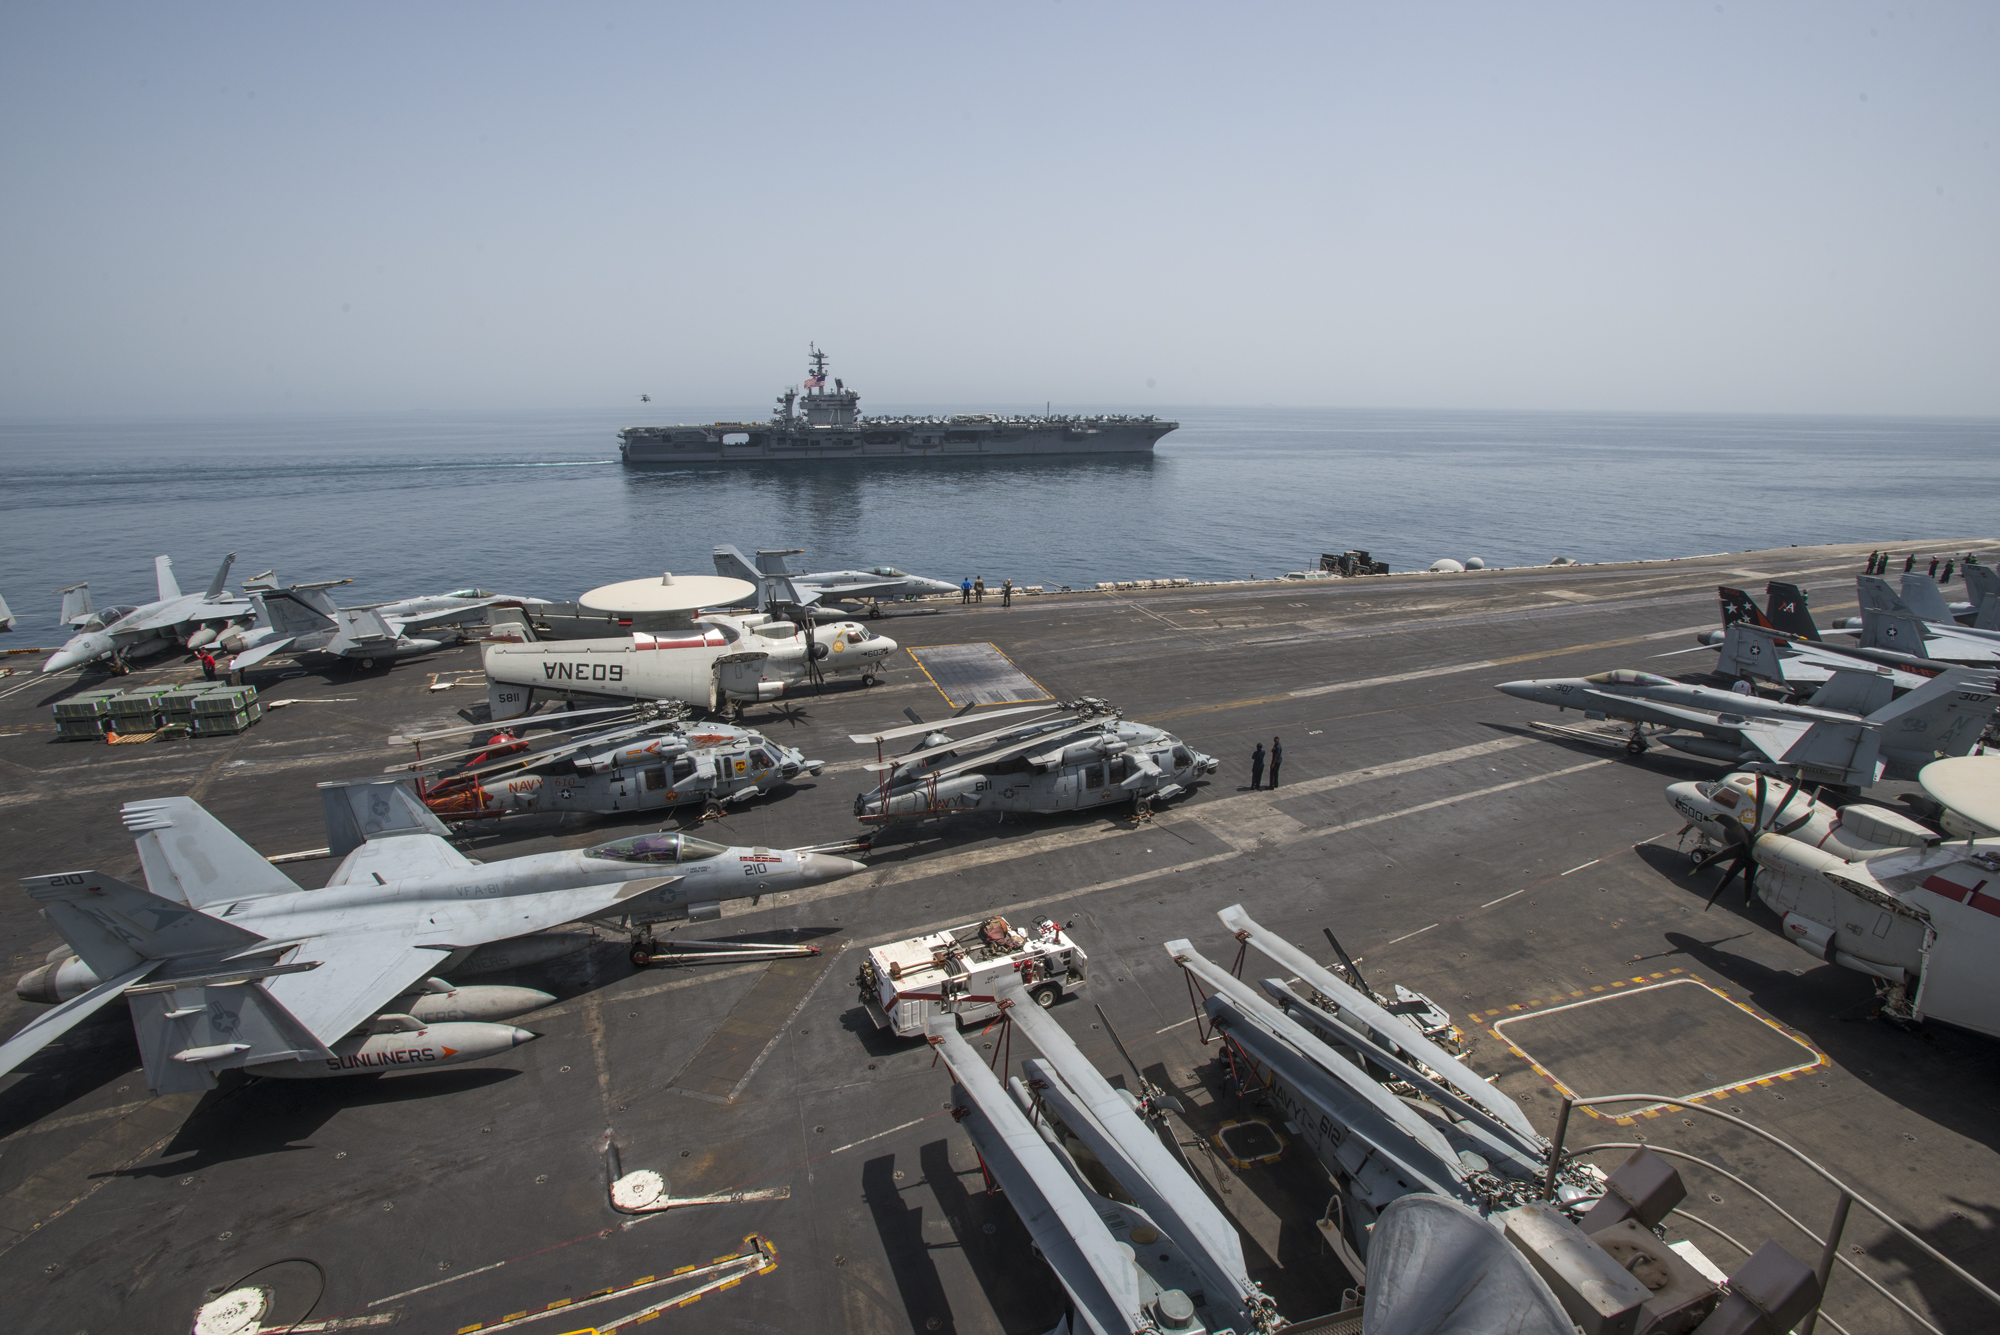 USS Theodore Roosevelt (CVN-71) relieves the aircraft carrier USS Carl Vinson (CVN-70) in the Gulf of Oman. US Navy Photo